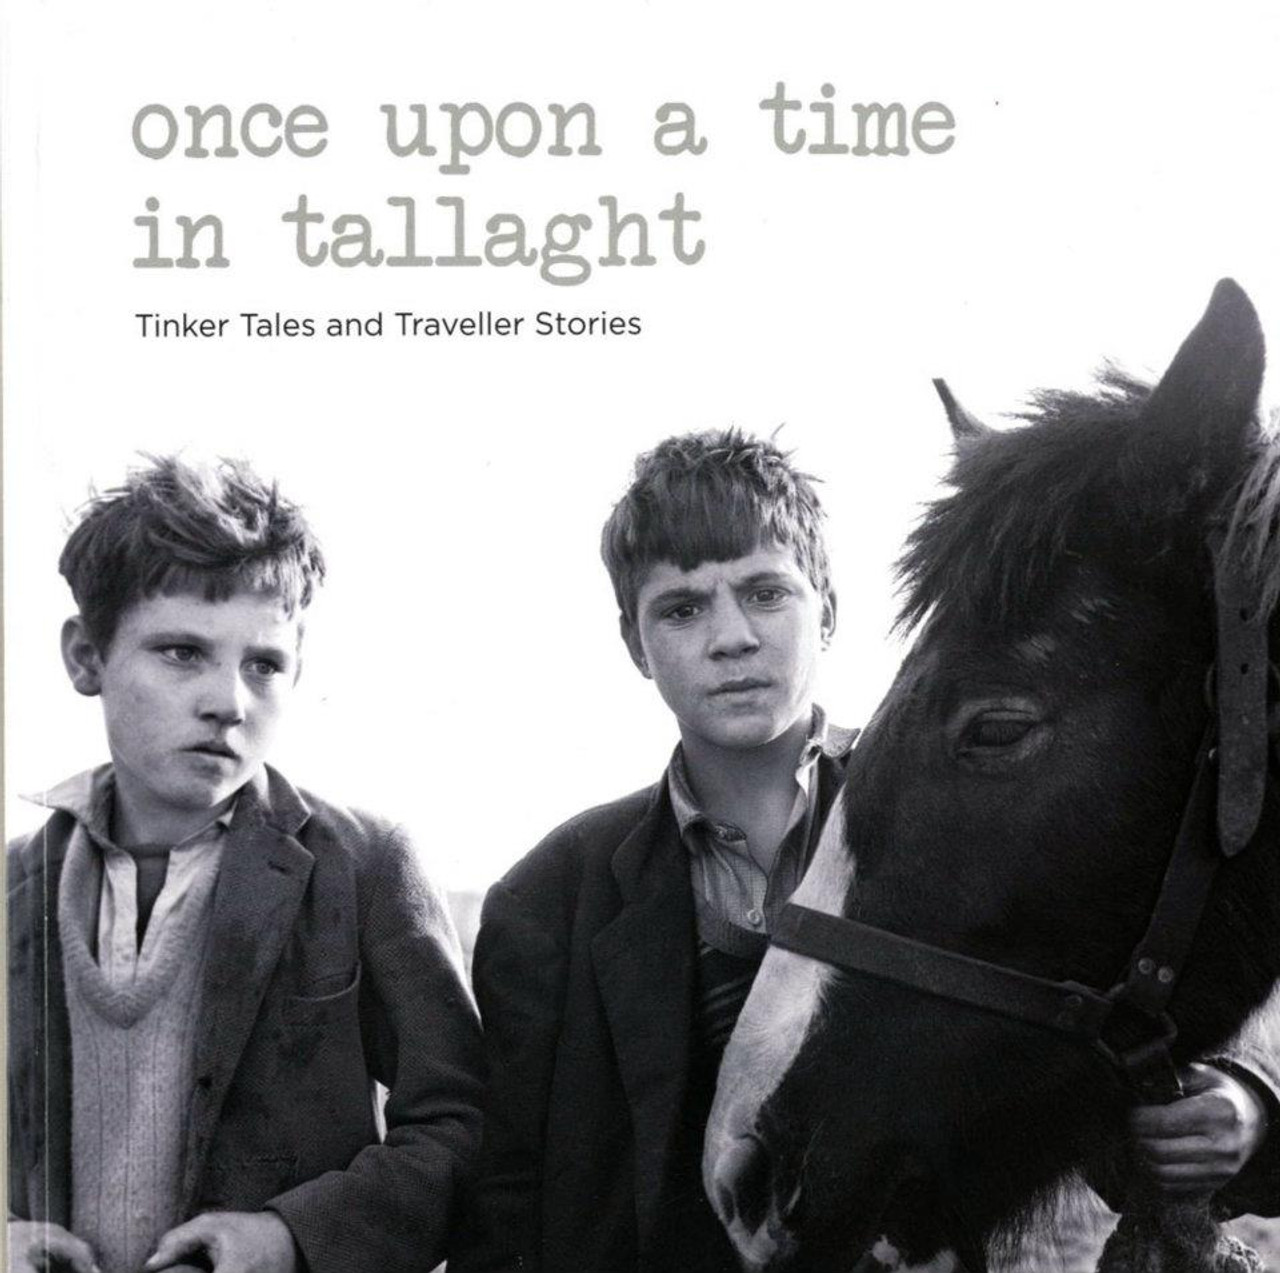 Ennis, Mervyn & MacWeeney, Alen - One Upon a time in Tallaght - Tinker Tales and Traveller Stories - PB photography 2012